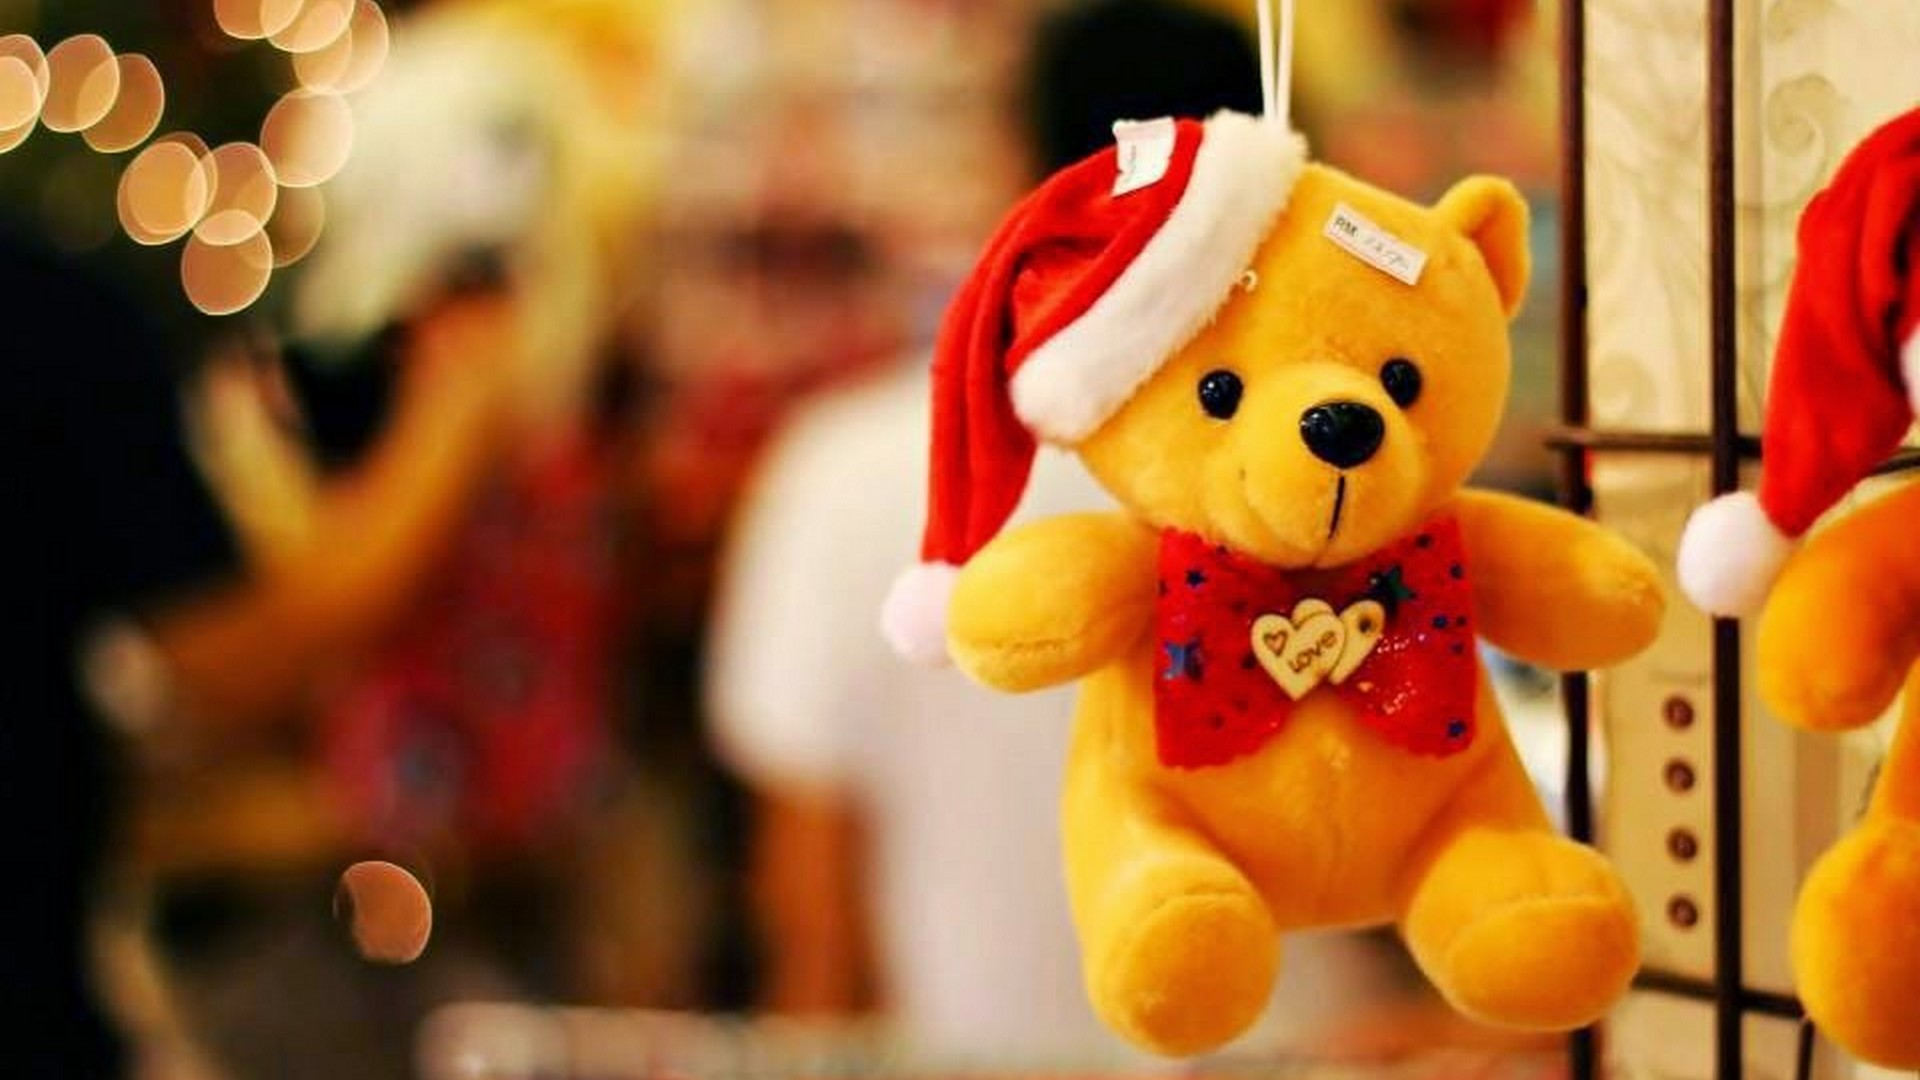 Desktop Wallpaper Yellow Cute With Image Resolution - Happy Teddy Day 2020 , HD Wallpaper & Backgrounds